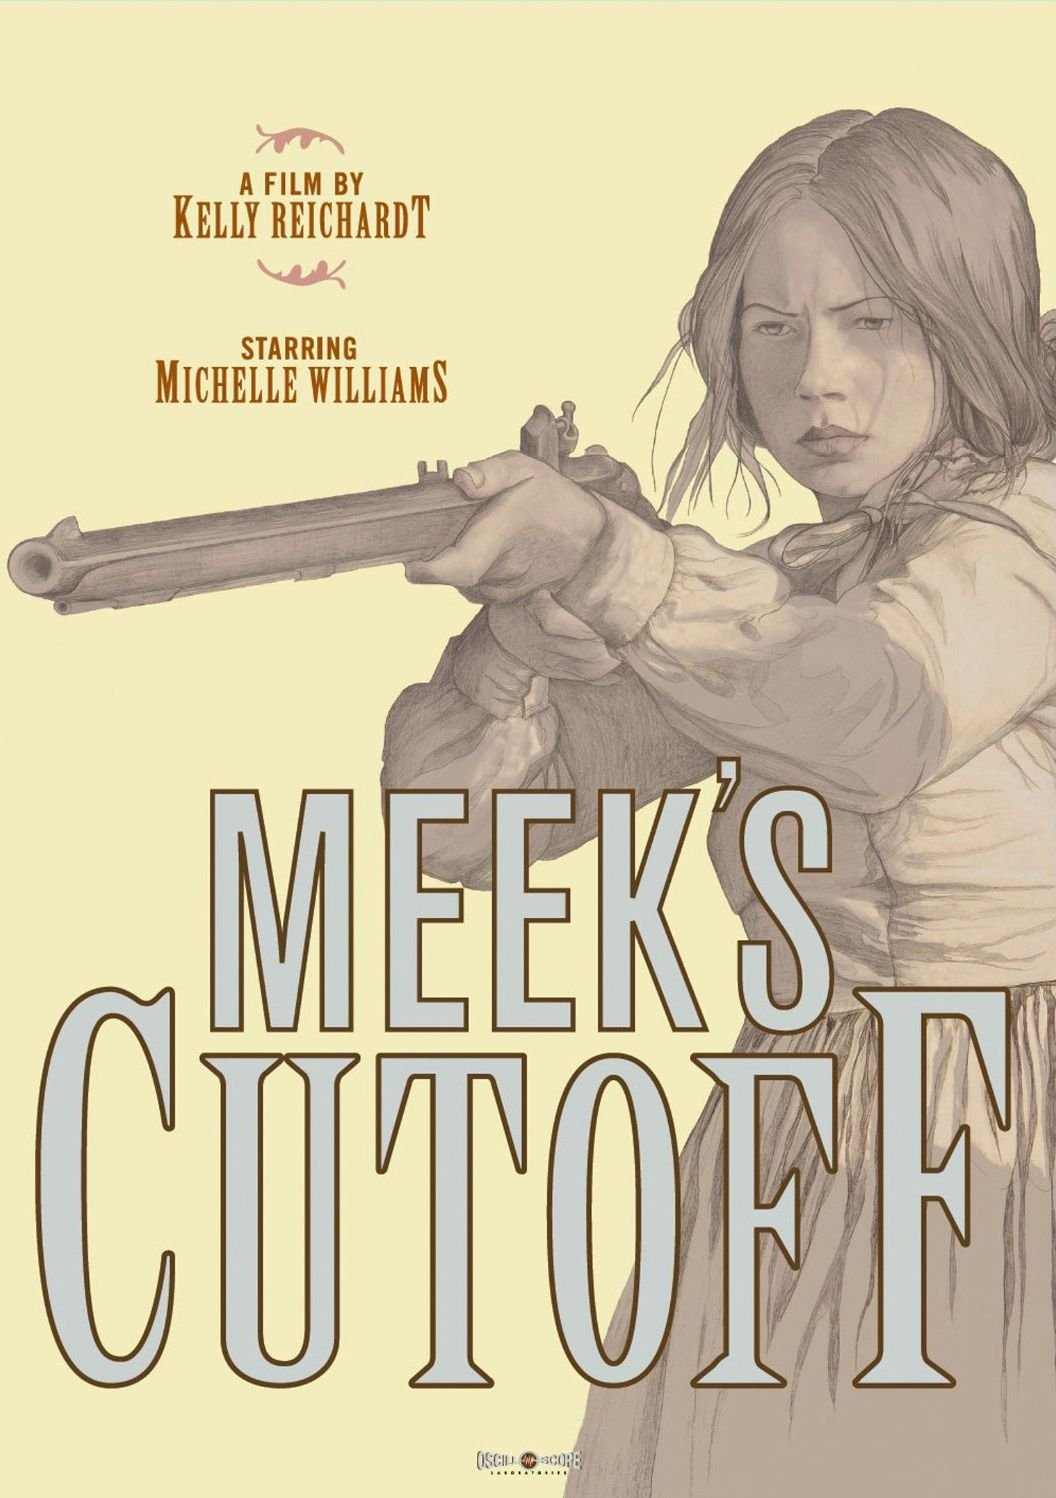 Publicity still for Meek's Cutoff